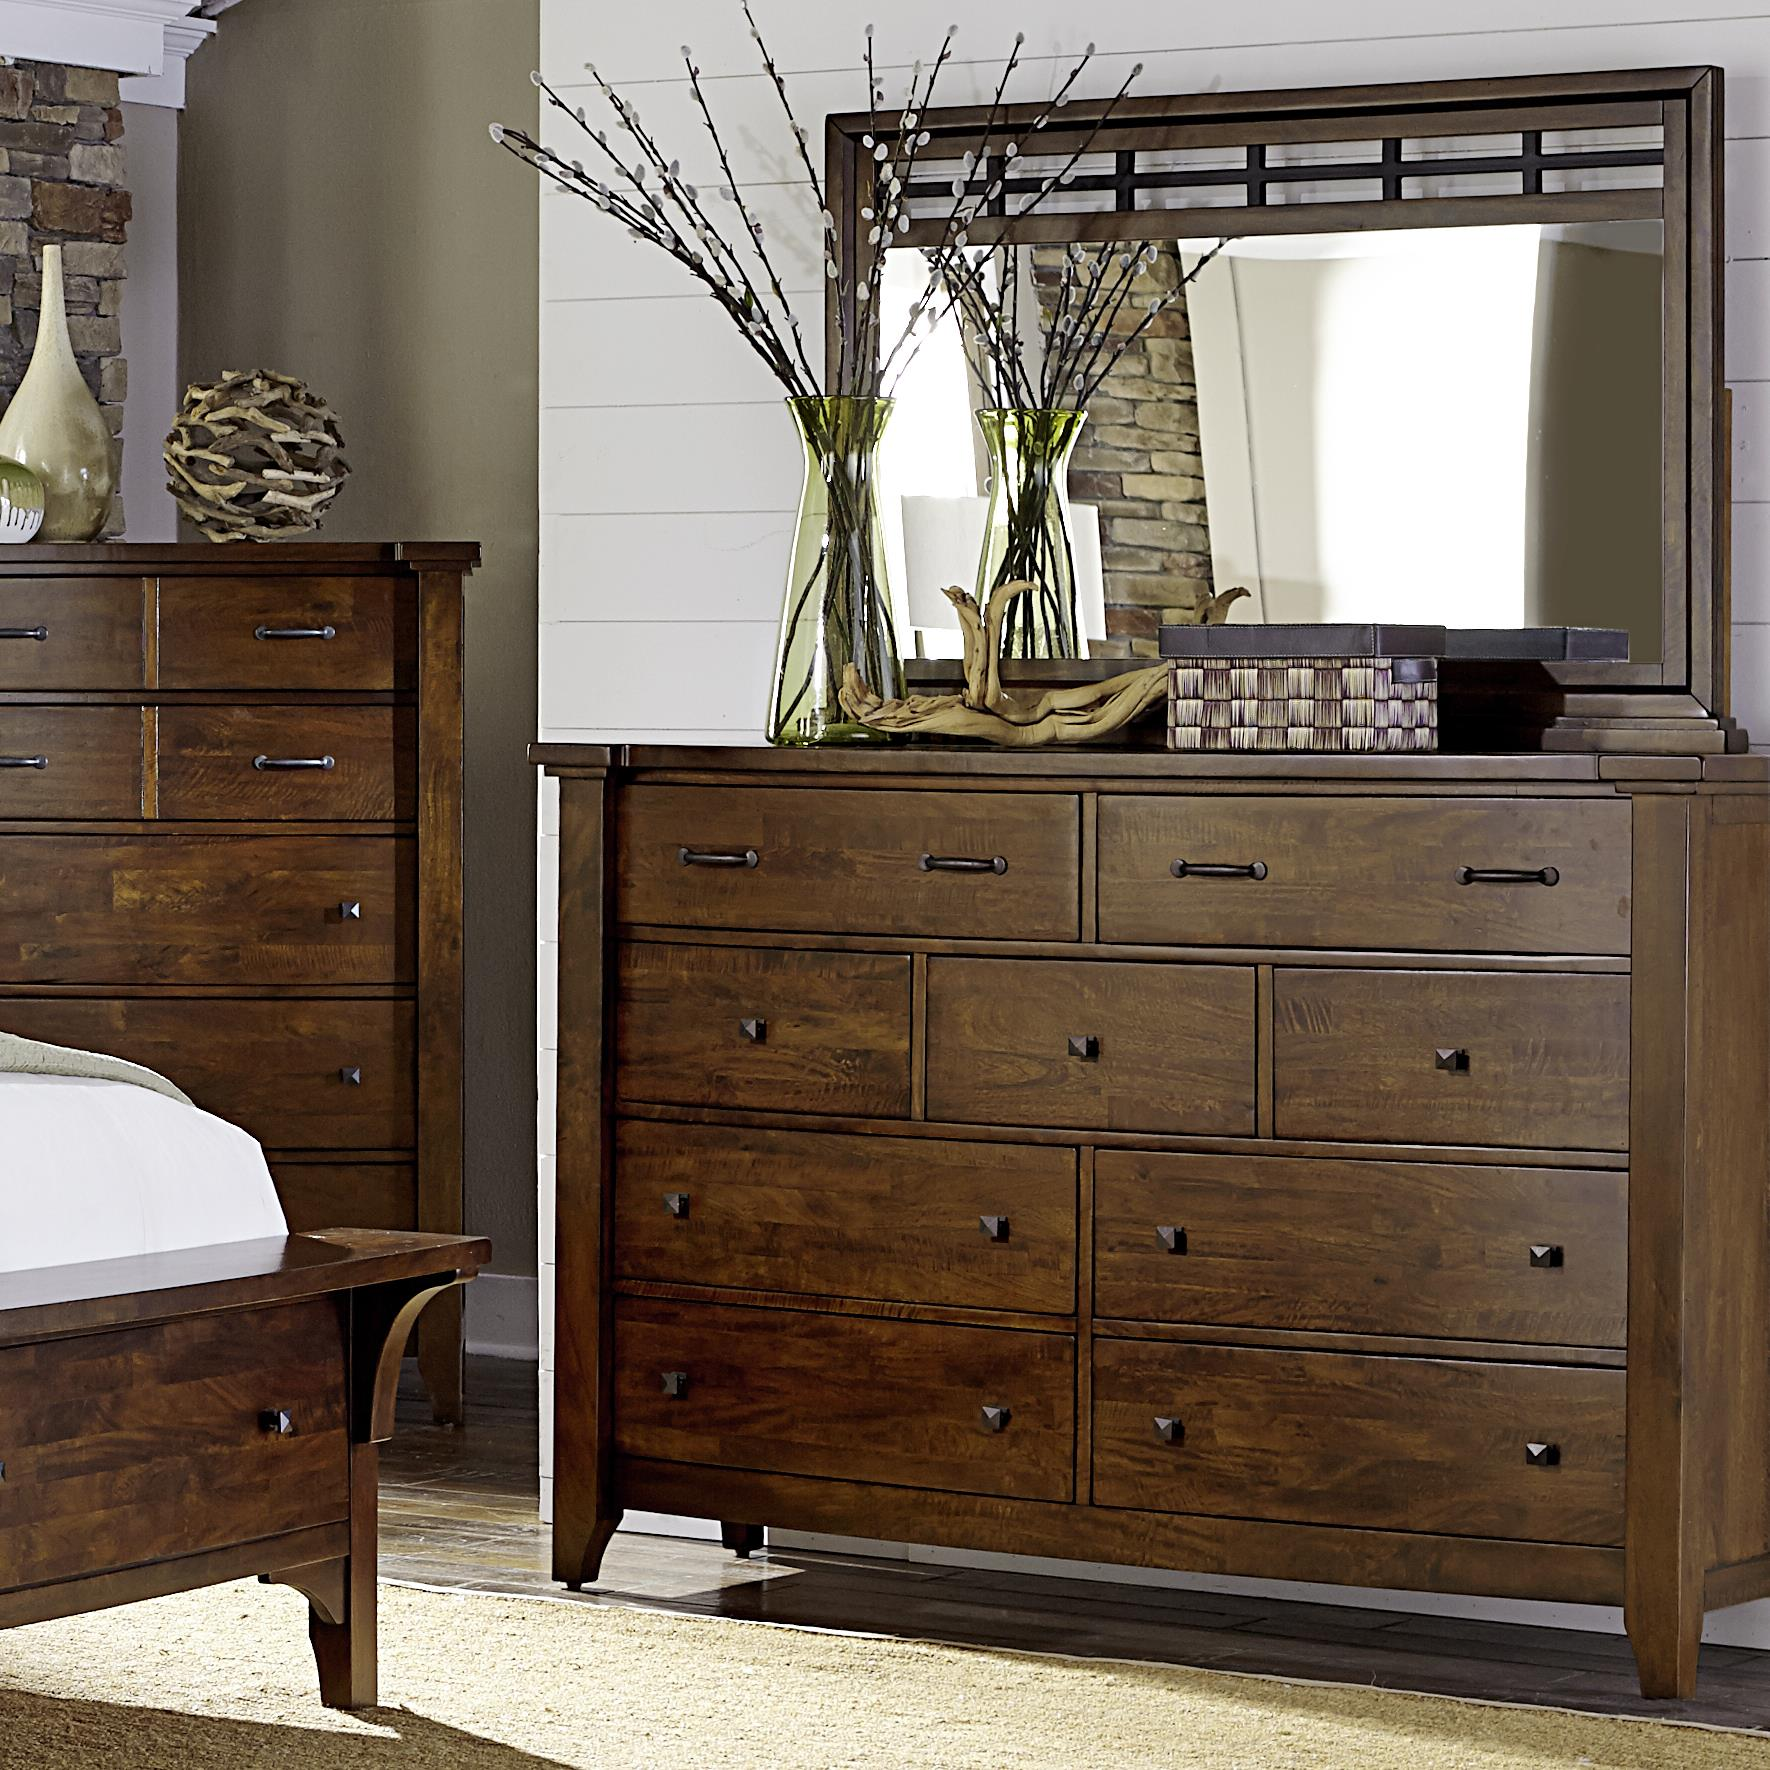 Whistler Retreat 9 Drawer Chest & Mirror by Napa Furniture Designs at Darvin Furniture